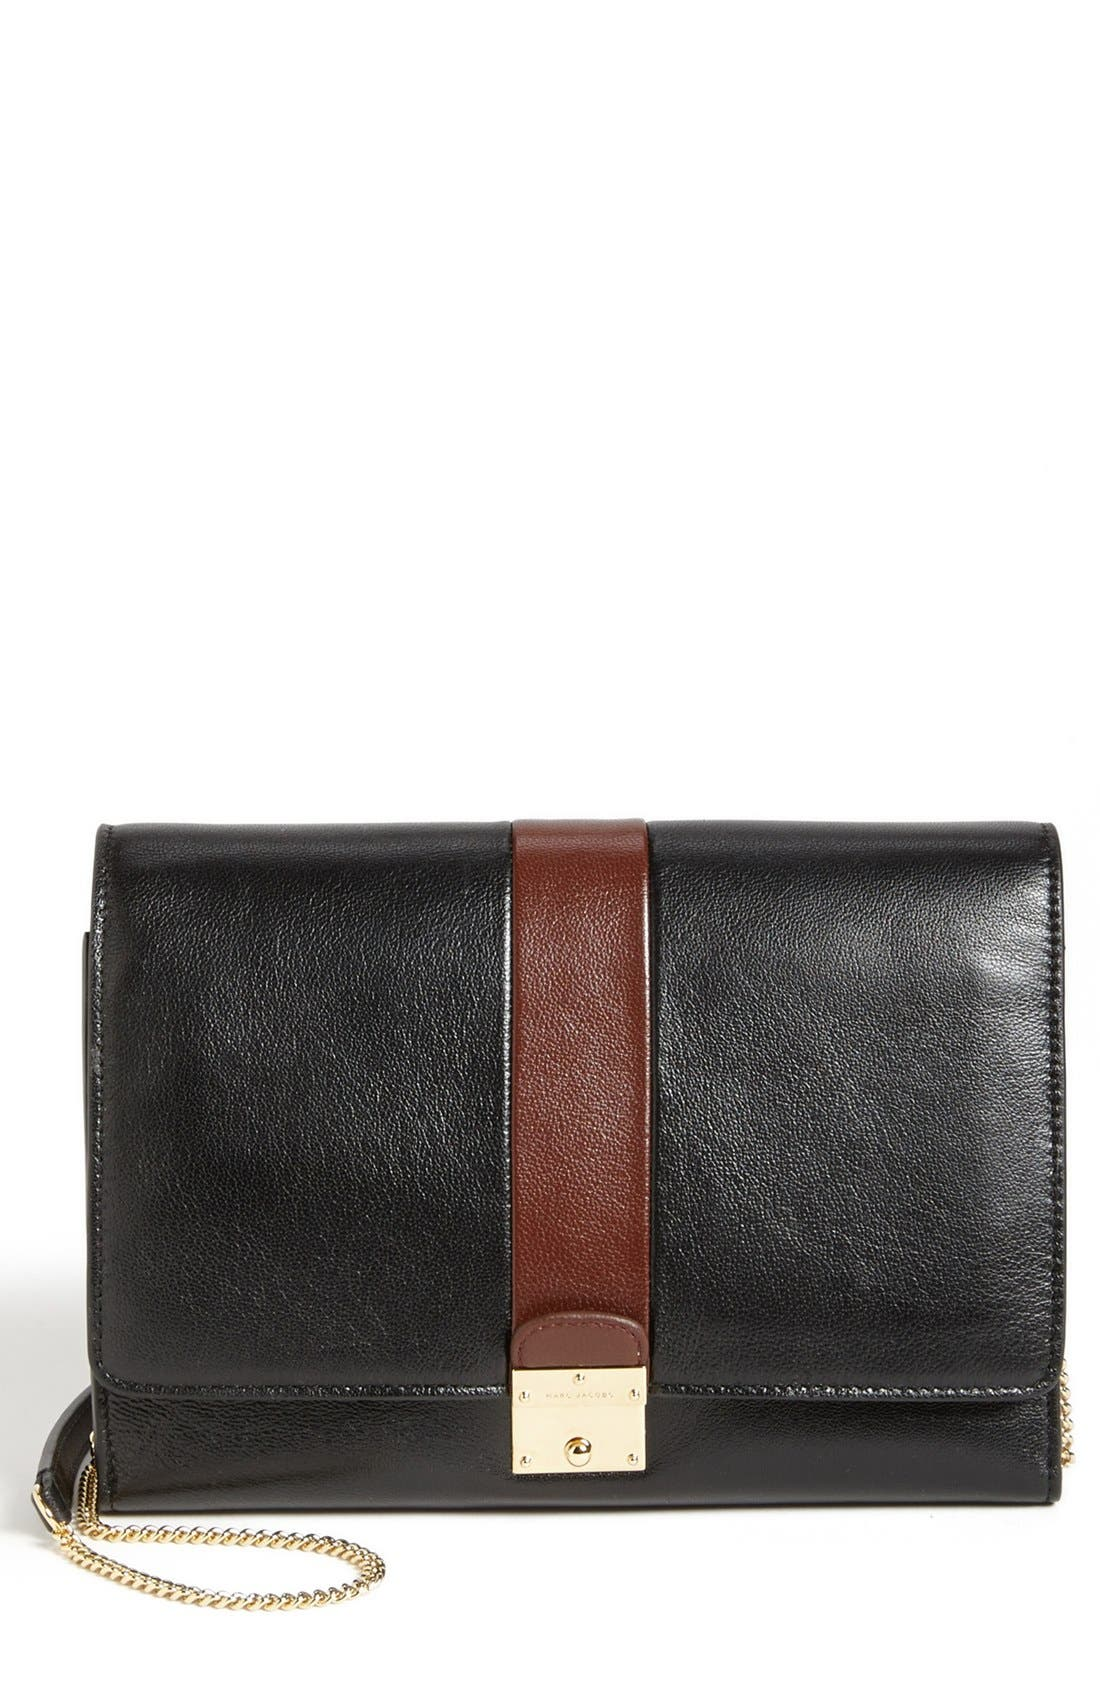 MARC JACOBS,                             'Checkers' All-In-One Leather Crossbody Bag,                             Main thumbnail 1, color,                             002